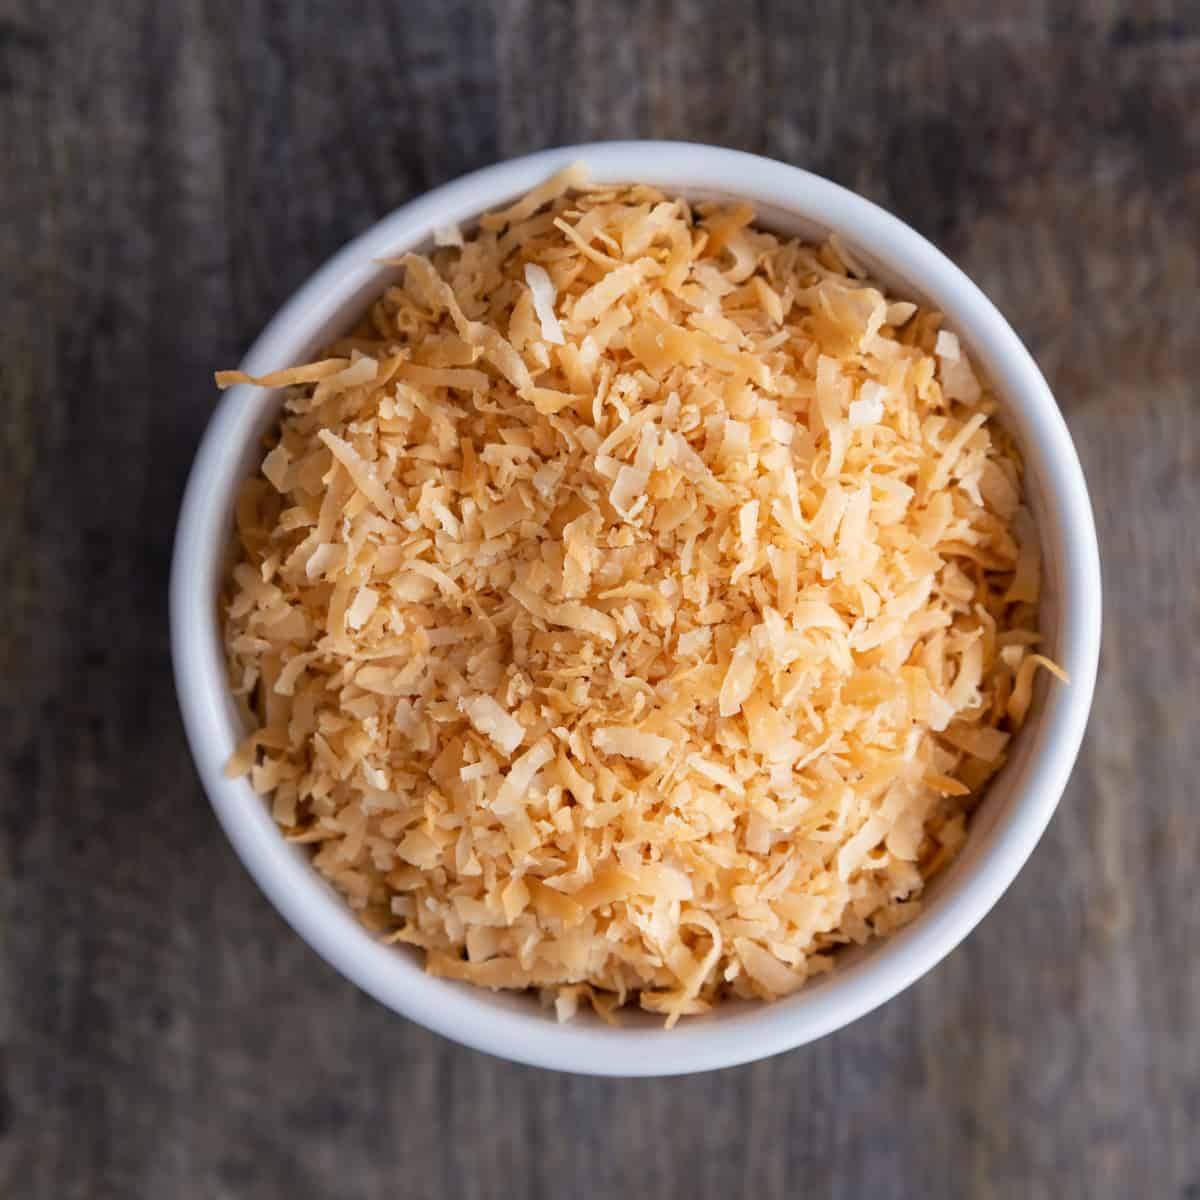 microwave toasted coconut in a white bowl